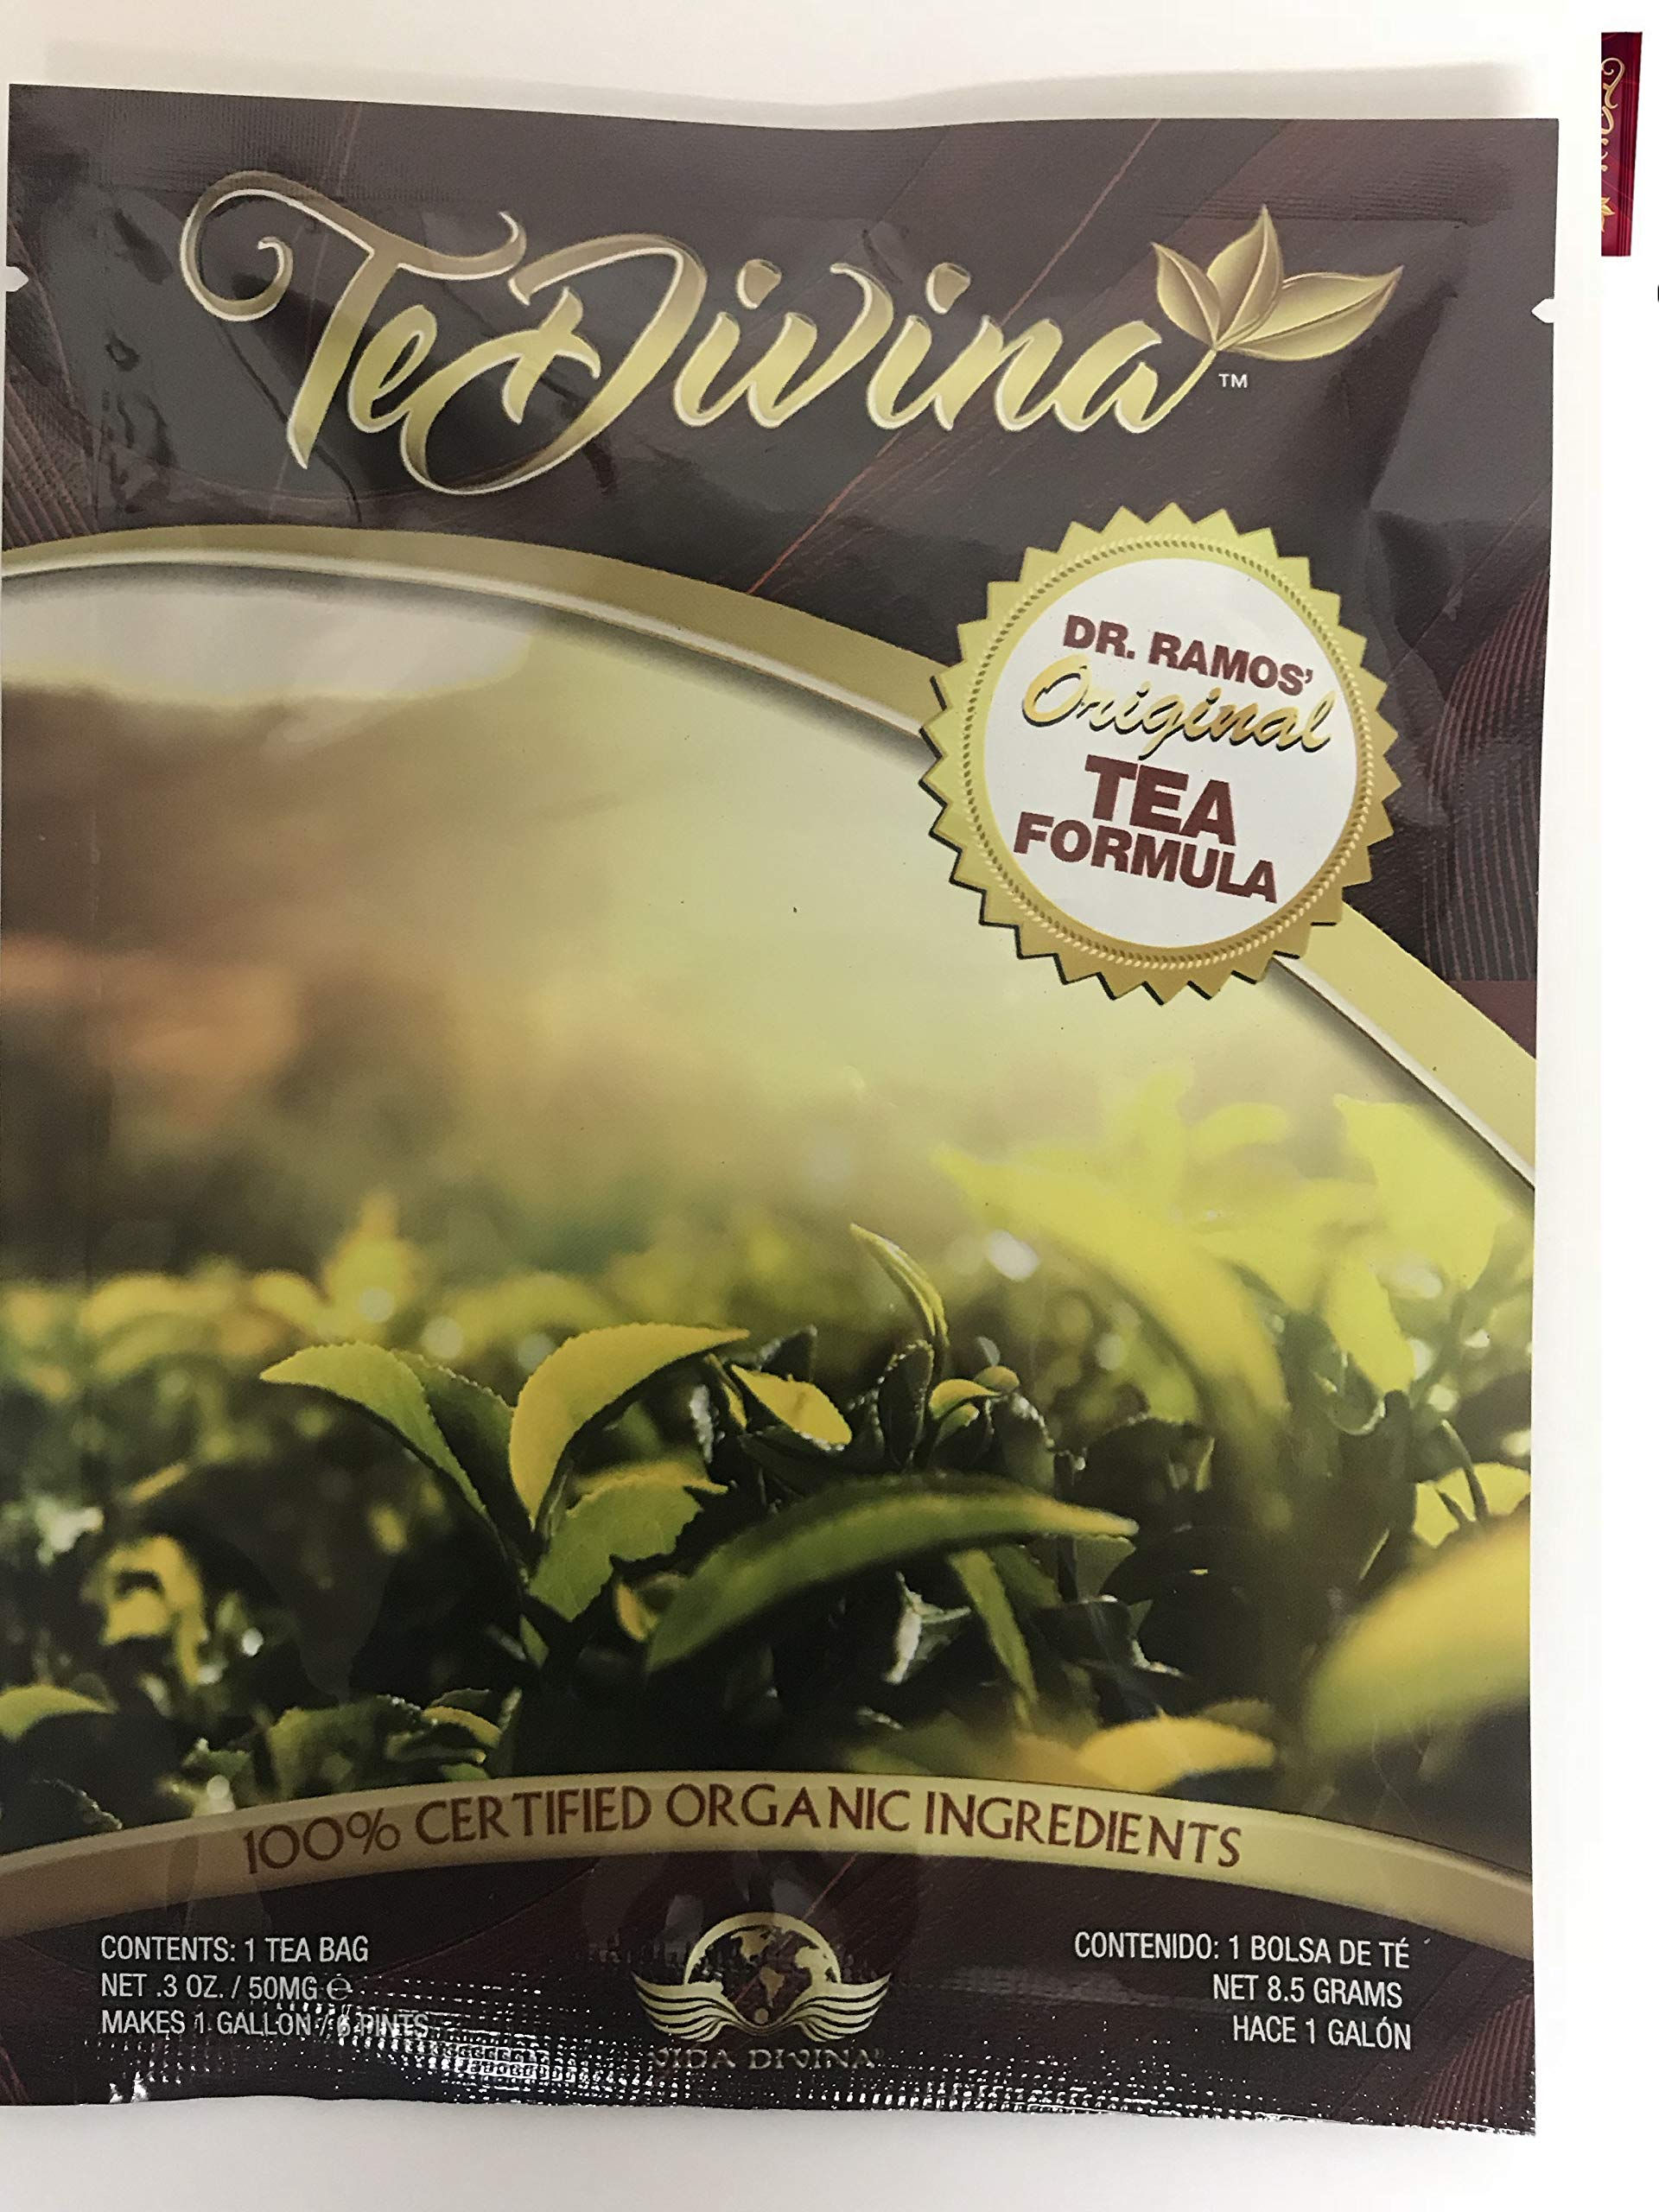 Best Seller Authentic,In stock,TeDivina 6 weeks supply supply,coming back of the''ORIGINAL''detox tea, way more effective than iaso tea by Vida Divina Te Divina (Image #1)